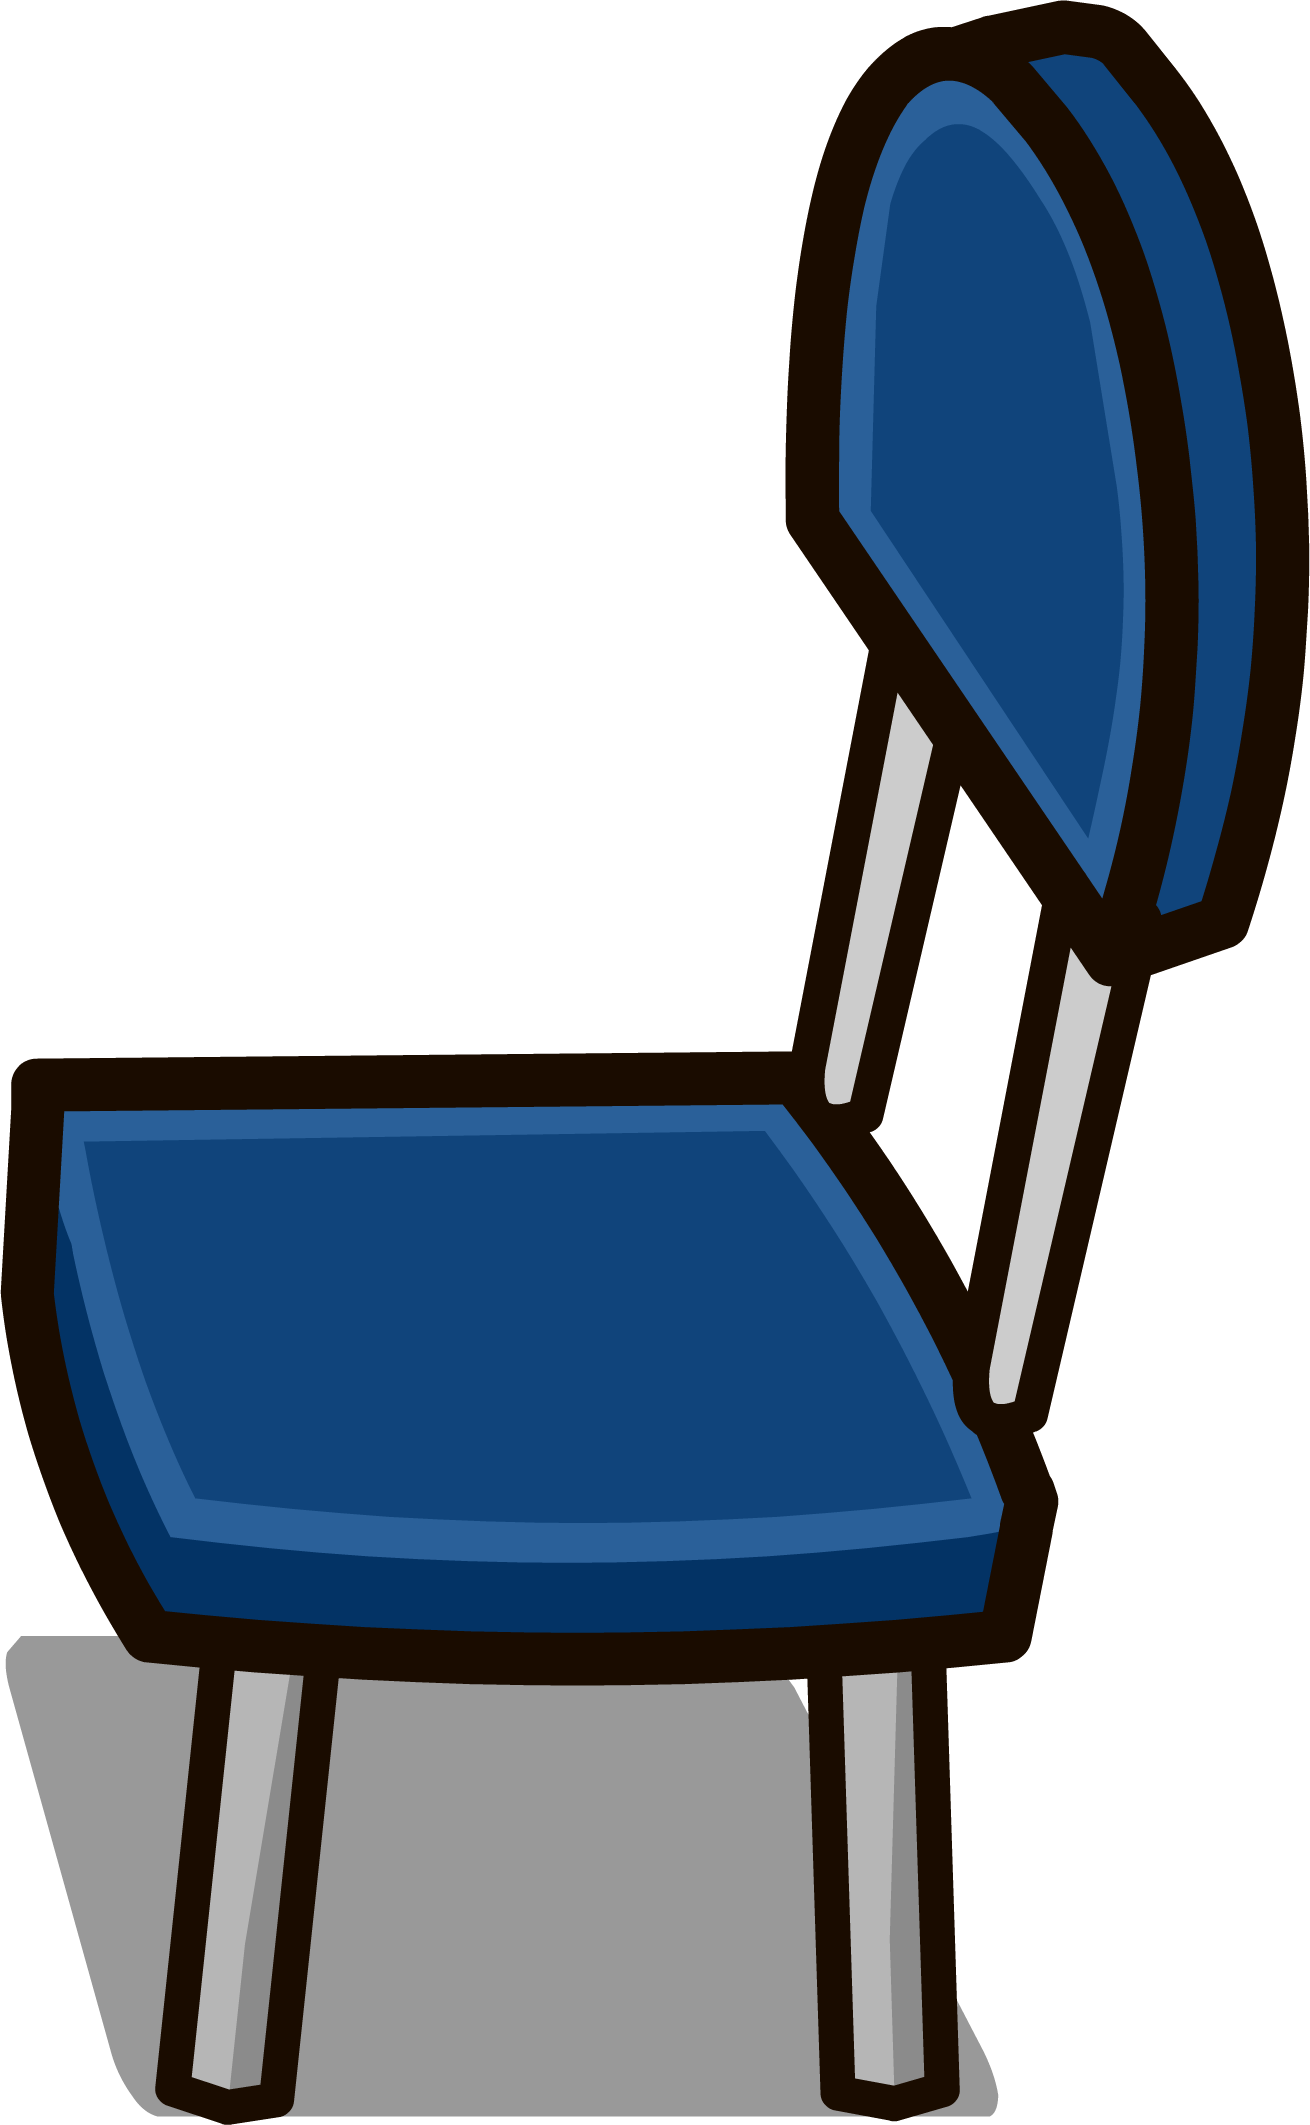 Furniture clipart electric fan. Image judge s chair